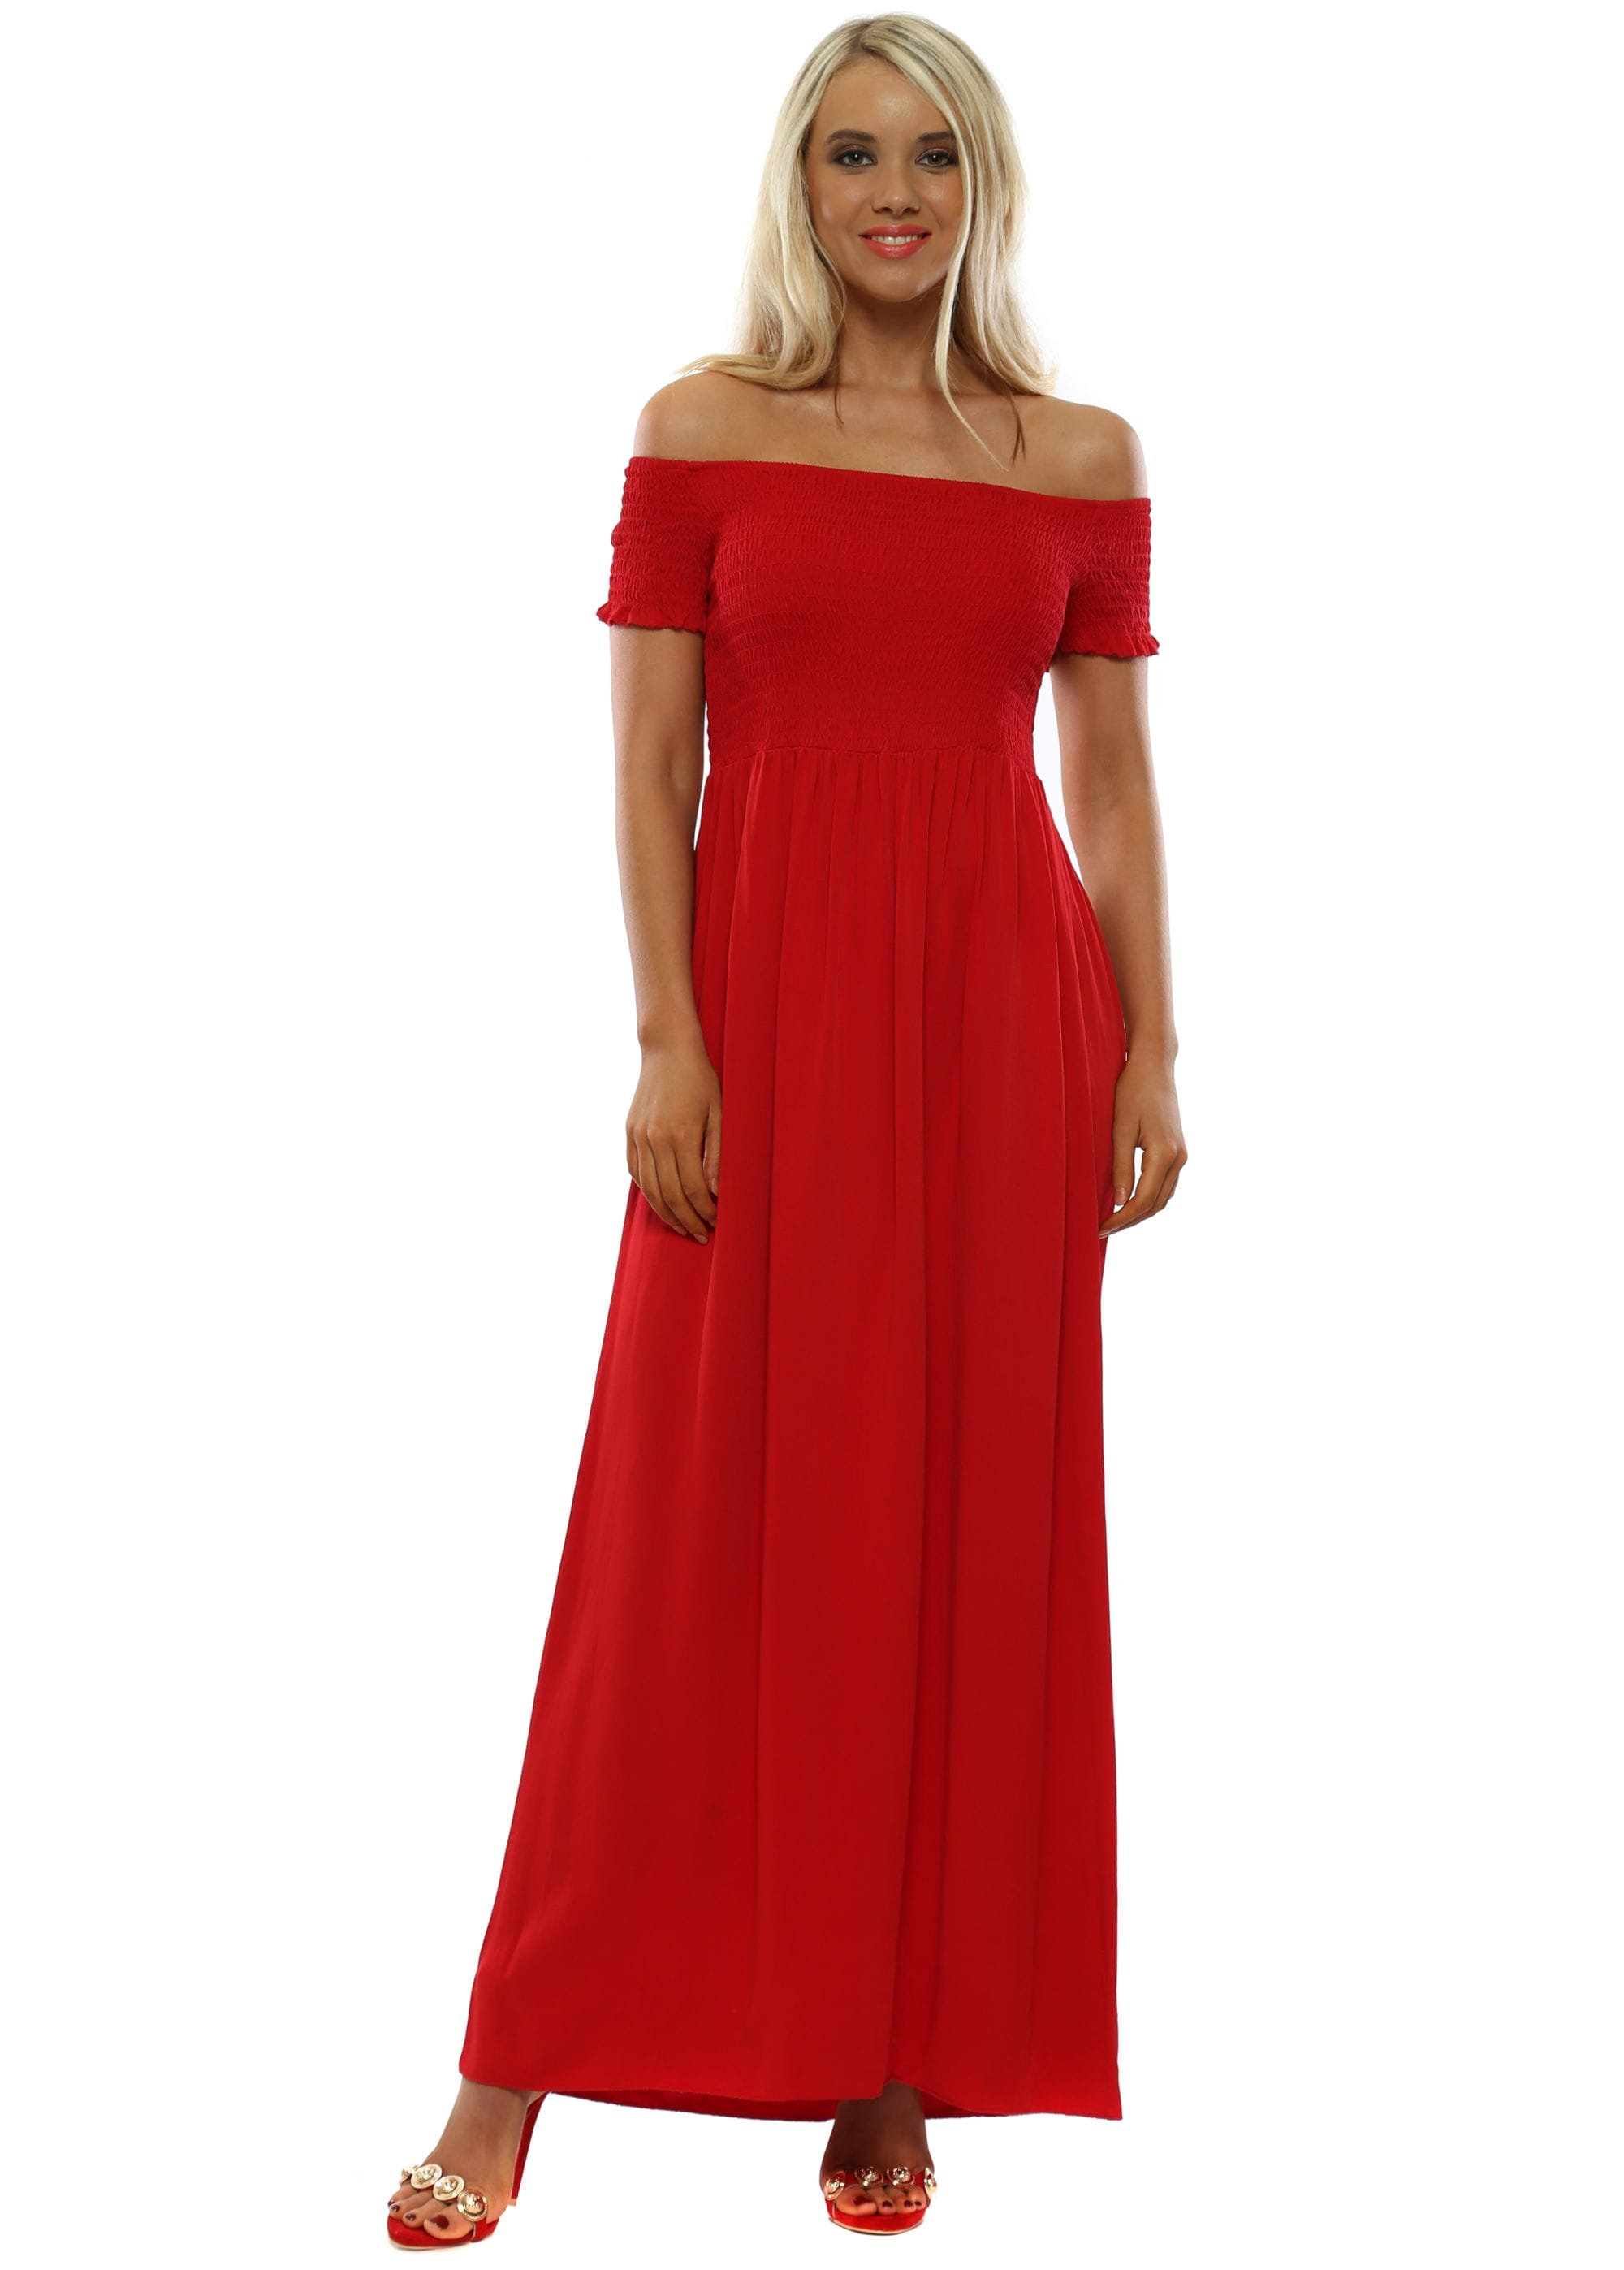 Red Off The Shoulder Maxi Dress 18addb7308